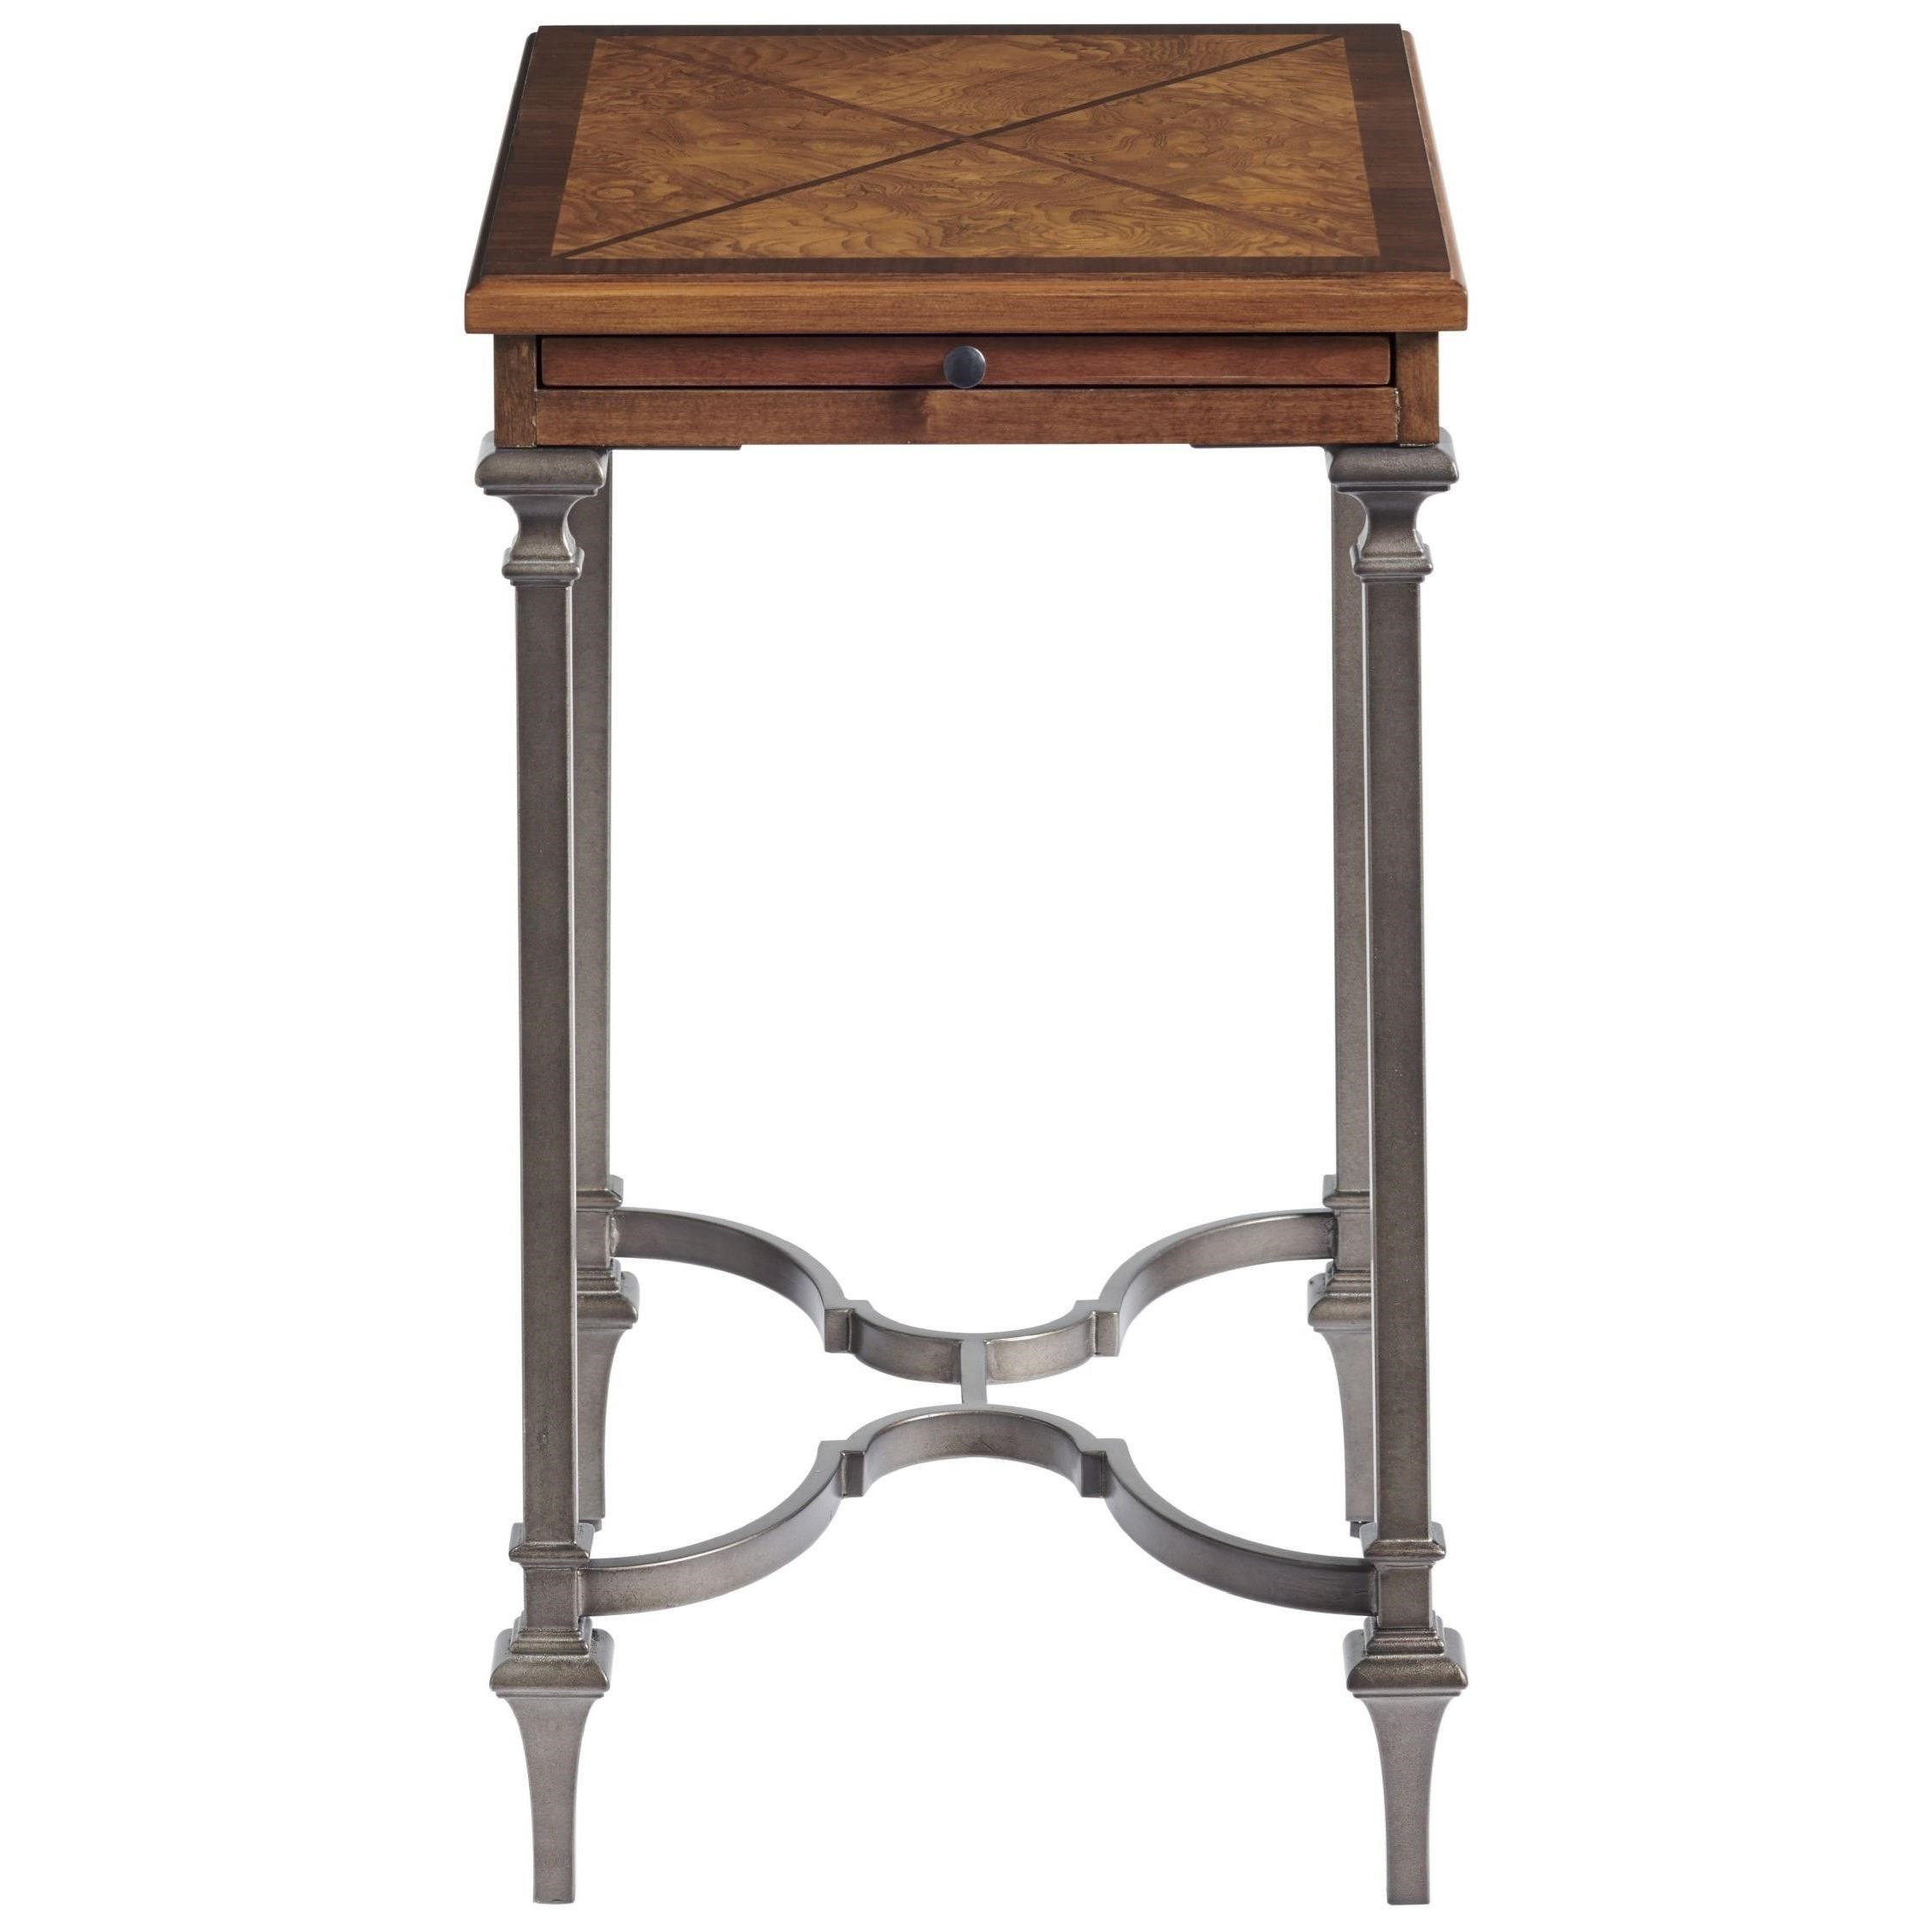 Traditions Kingsbury Chairside Table by Universal at Baer's Furniture